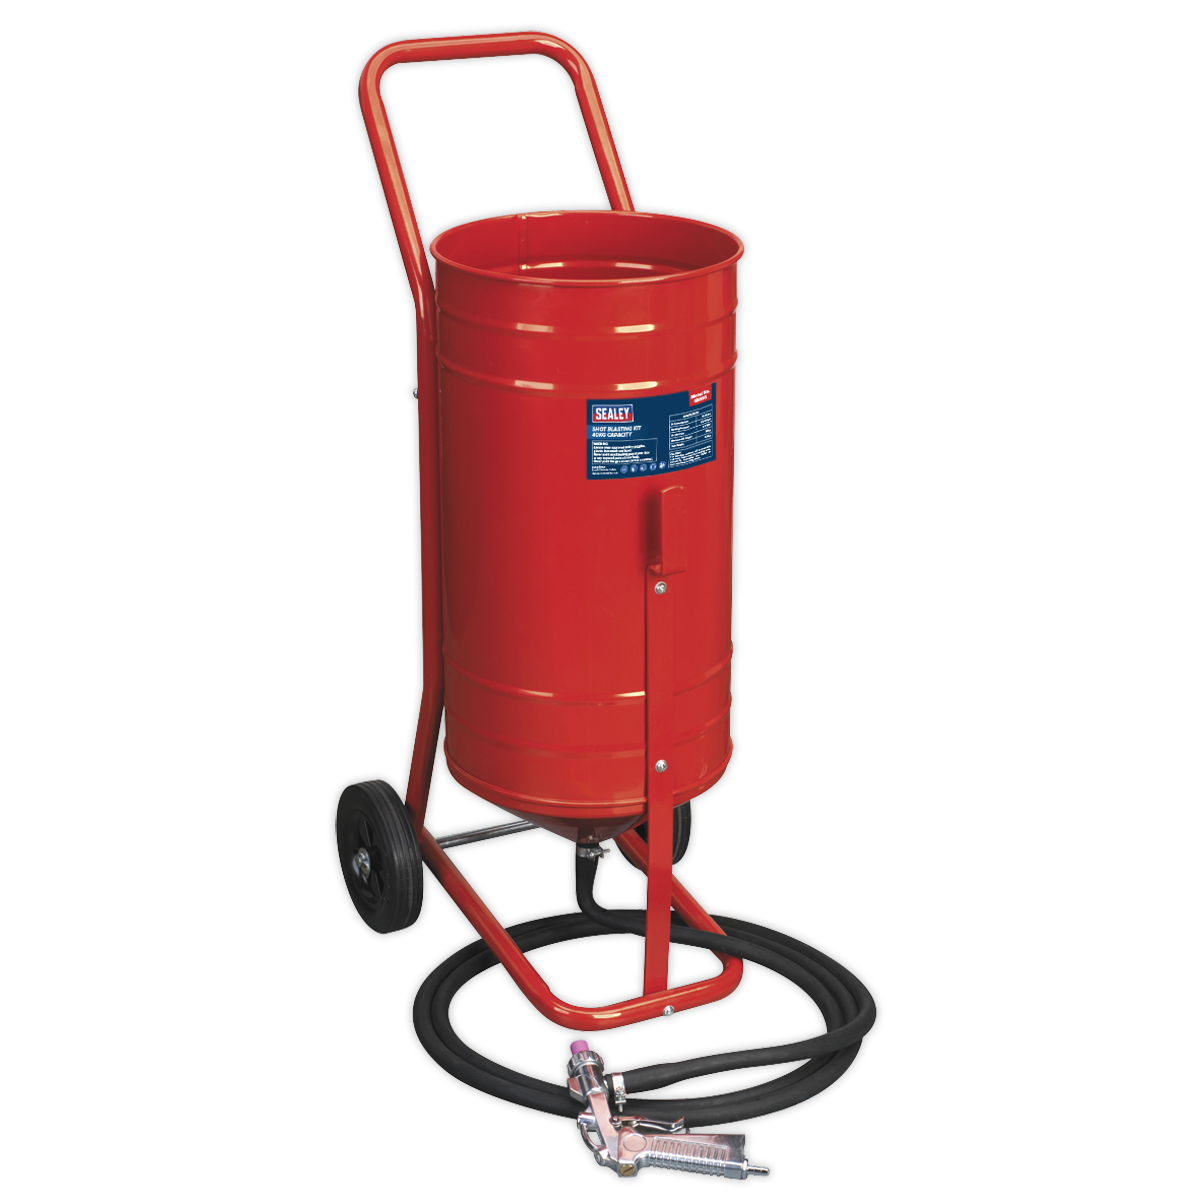 Shot Blasting Kit 40kg Capacity   SEALEY SB995 by Sealey   New